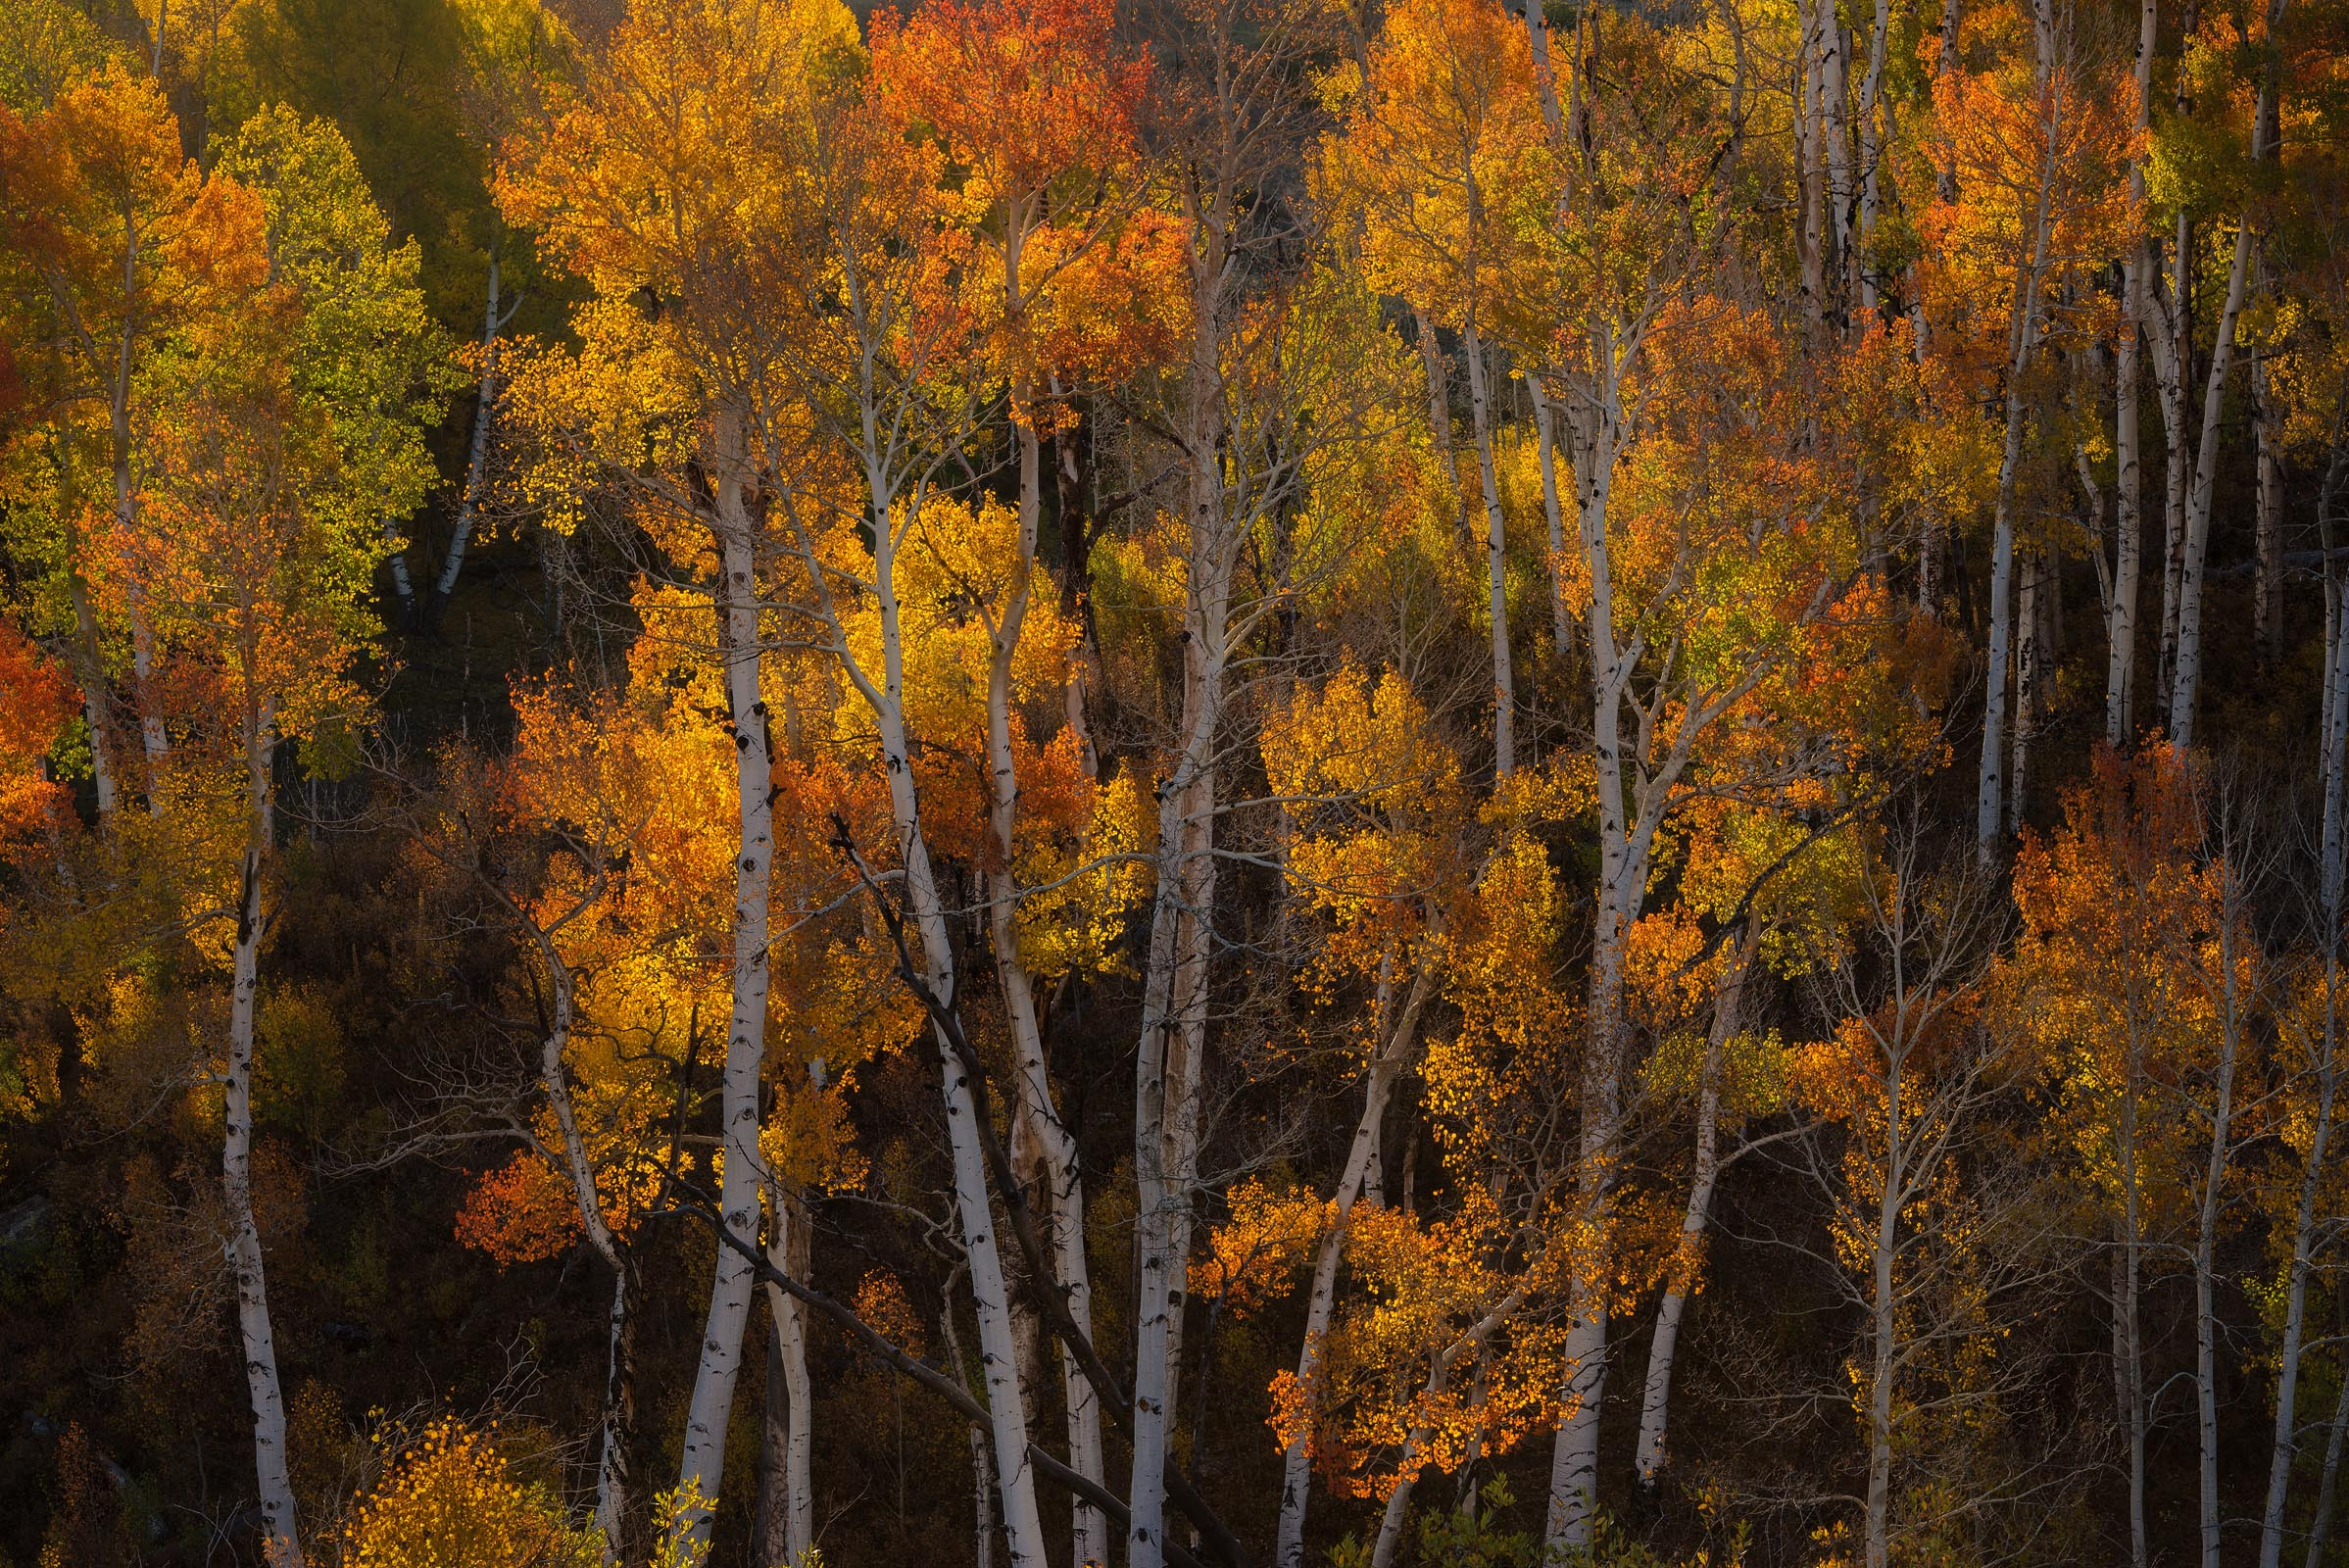 Photograph of Aspen Forest in San Juan Mountains, Colorado by Brent Goldman Photography